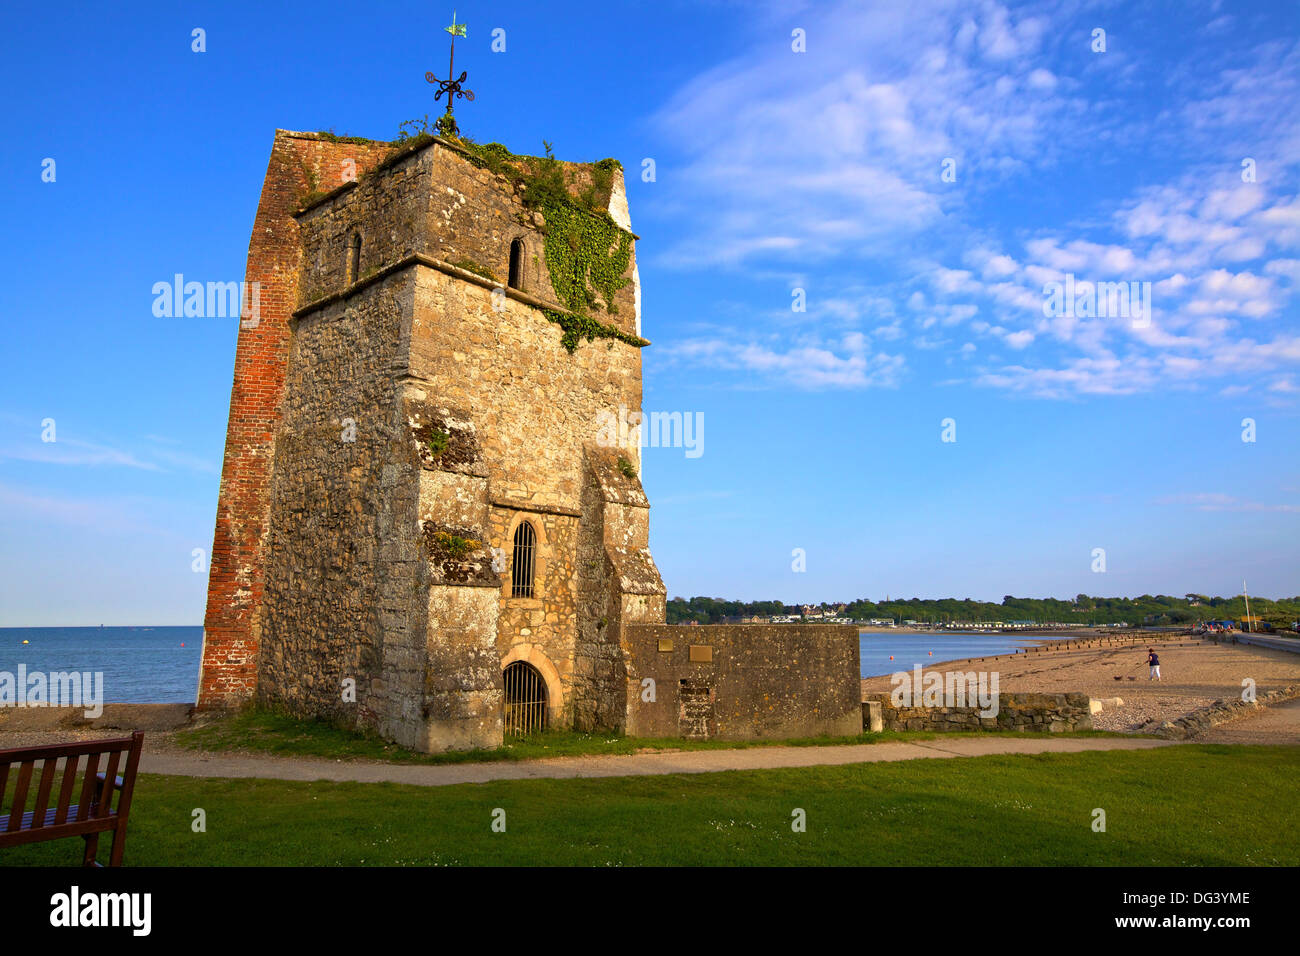 St. Helen's Old Church, St. Helen's, Isle of Wight, England, United Kingdom, Europe - Stock Image